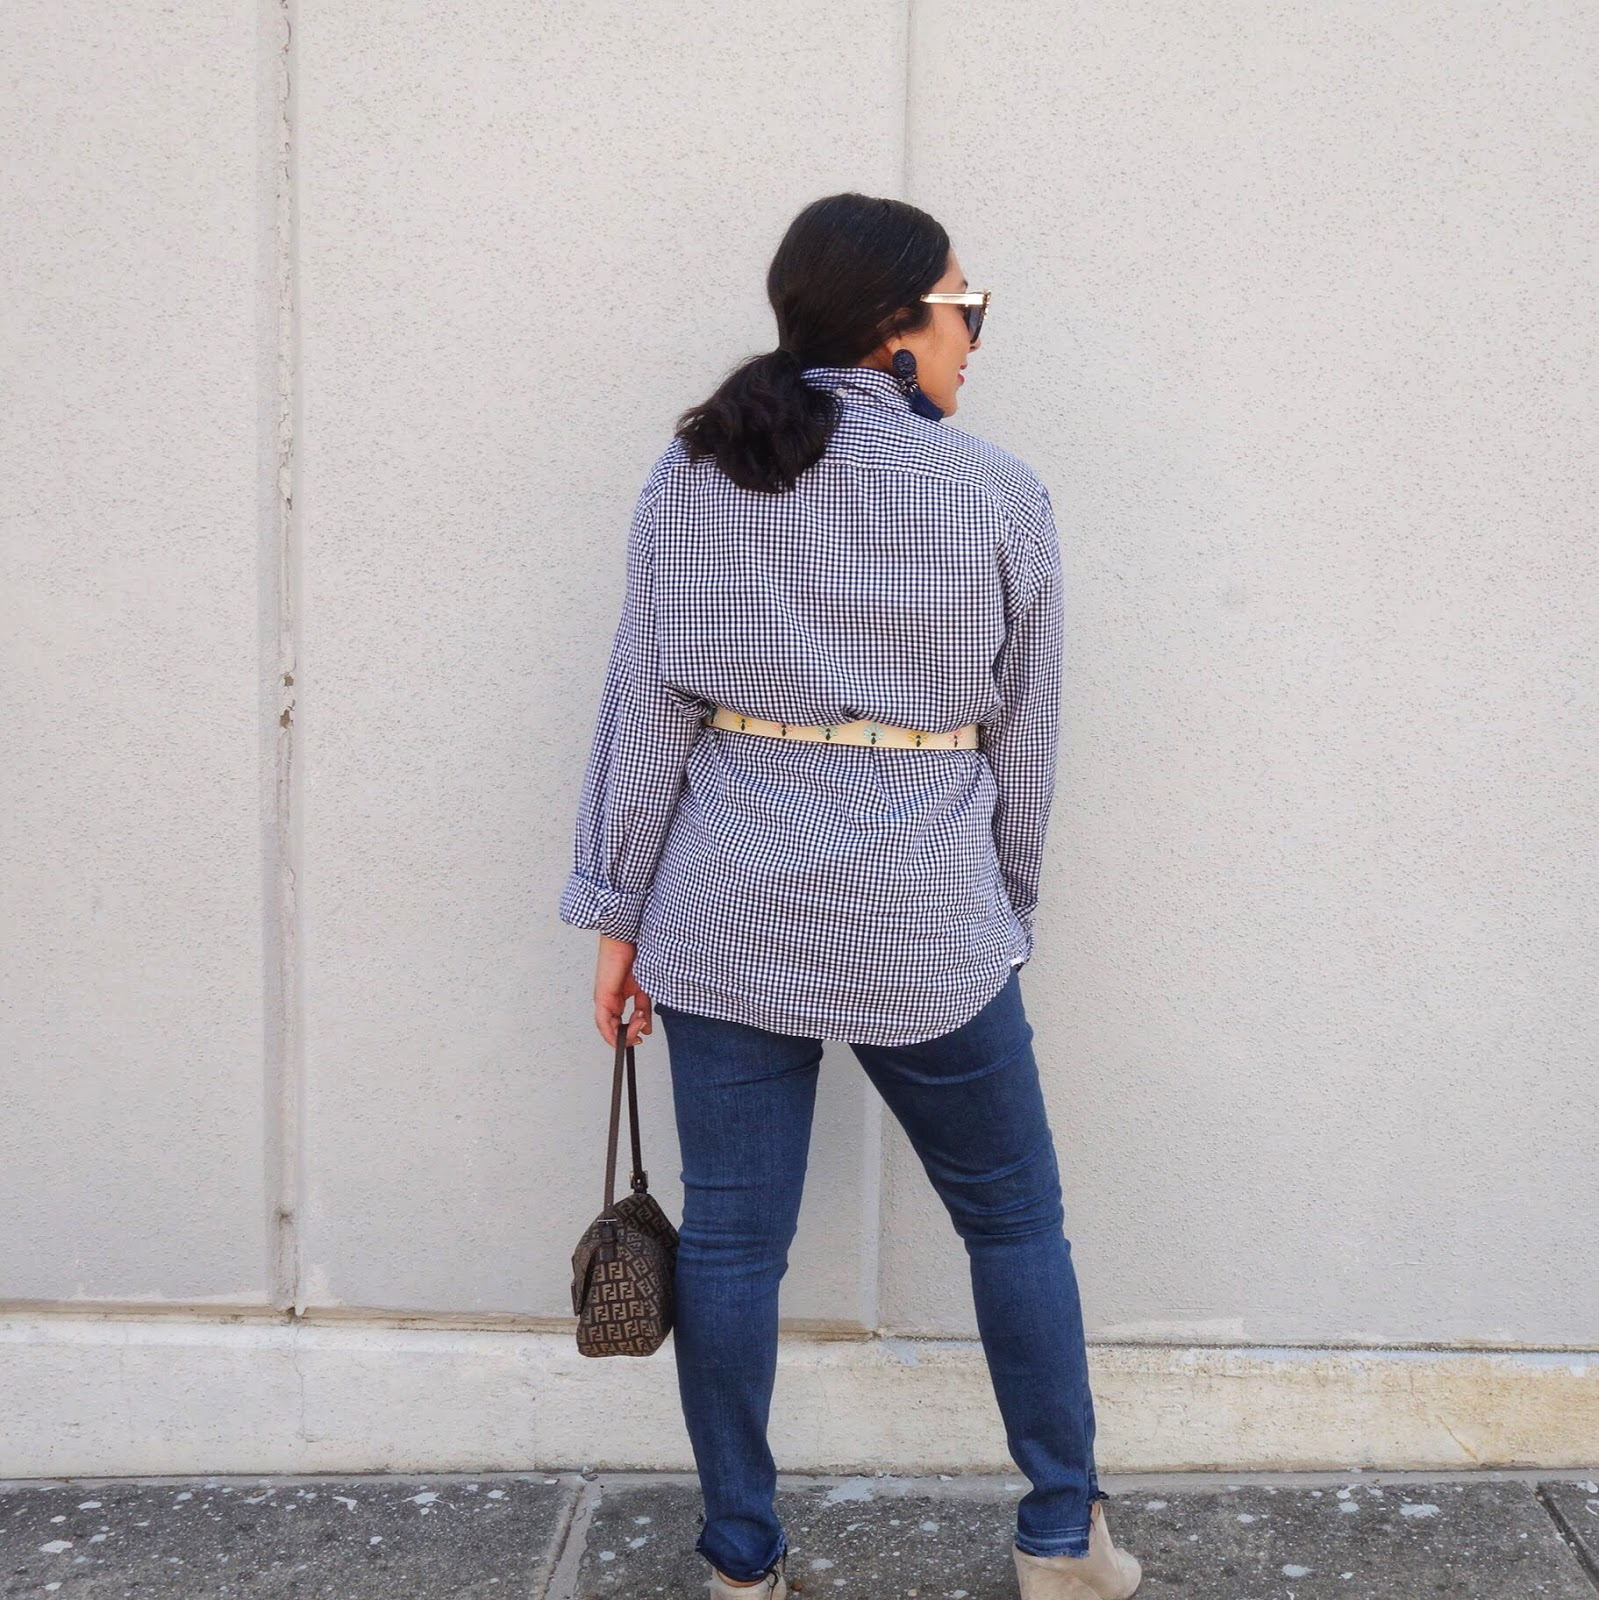 Boyfriend Shirt, How to wear Boyfriend Shirt, Shirt with Belt